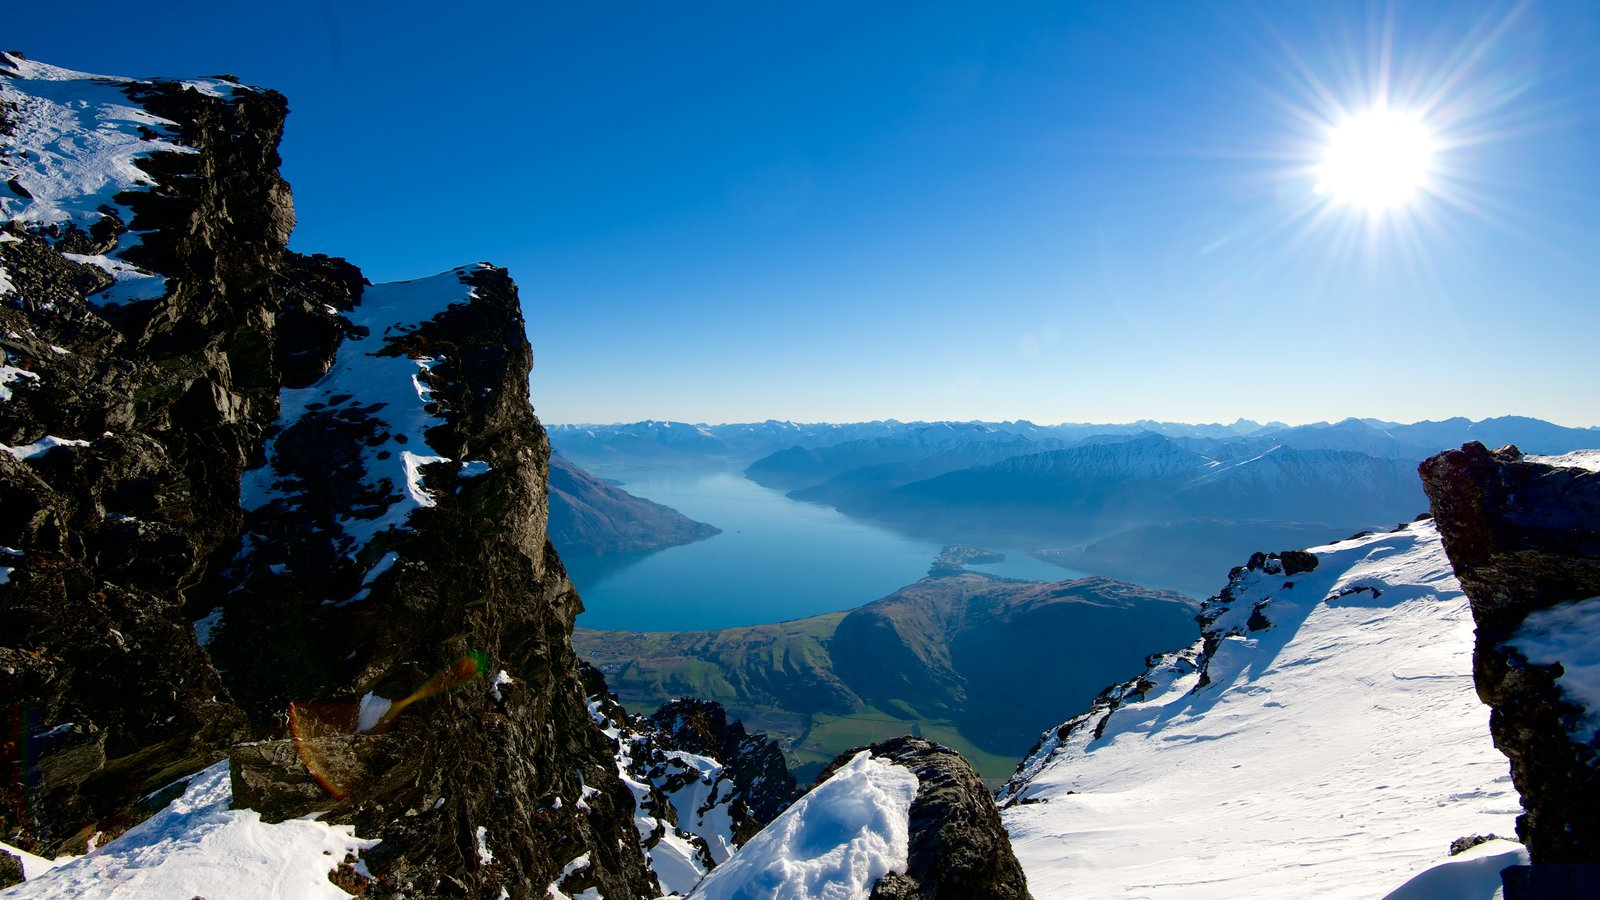 The Remarkables Ski Area which includes landscape views, snow and a river or creek